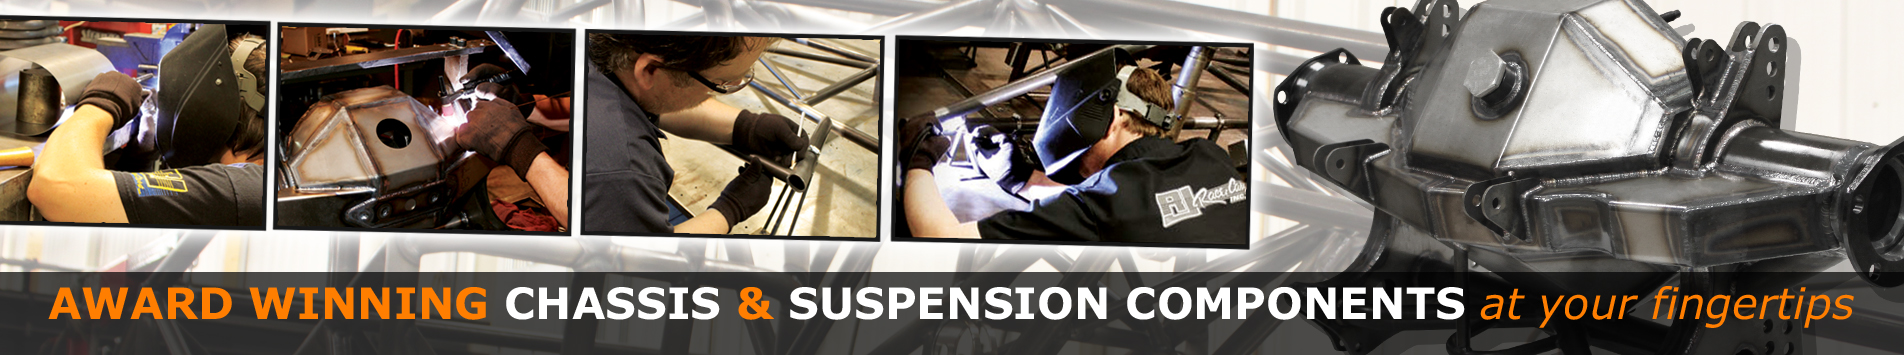 chassis-suspension-banner.jpg